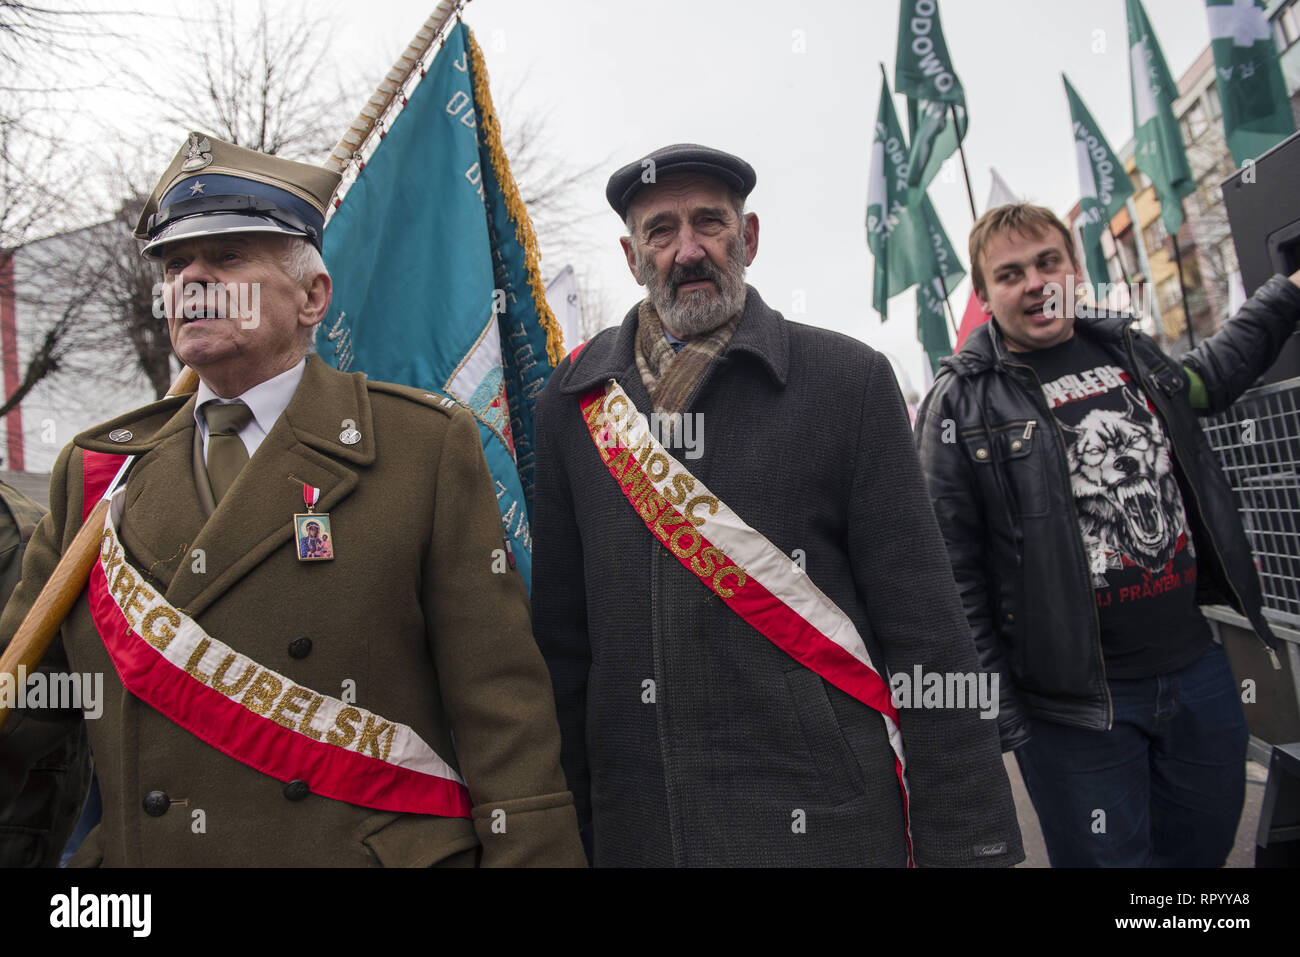 Hajnowka, Poldlaskie, Poland. 23rd Feb, 2019. Nationalists marching to commemorate the Cursed Soldiers.Polish nationalists organized a commemorative march of the 'Cursed Soldiers'' in the city of Hajnowka next to the Belarusian border. The Cursed Soldiers also known as the Doomed Soldiers were anti-communist resistant fighters after WWII, however they were also famous of committing crimes against civilians, mostly ethnic Belarusians. Credit: Attila Husejnow/SOPA Images/ZUMA Wire/Alamy Live News - Stock Image